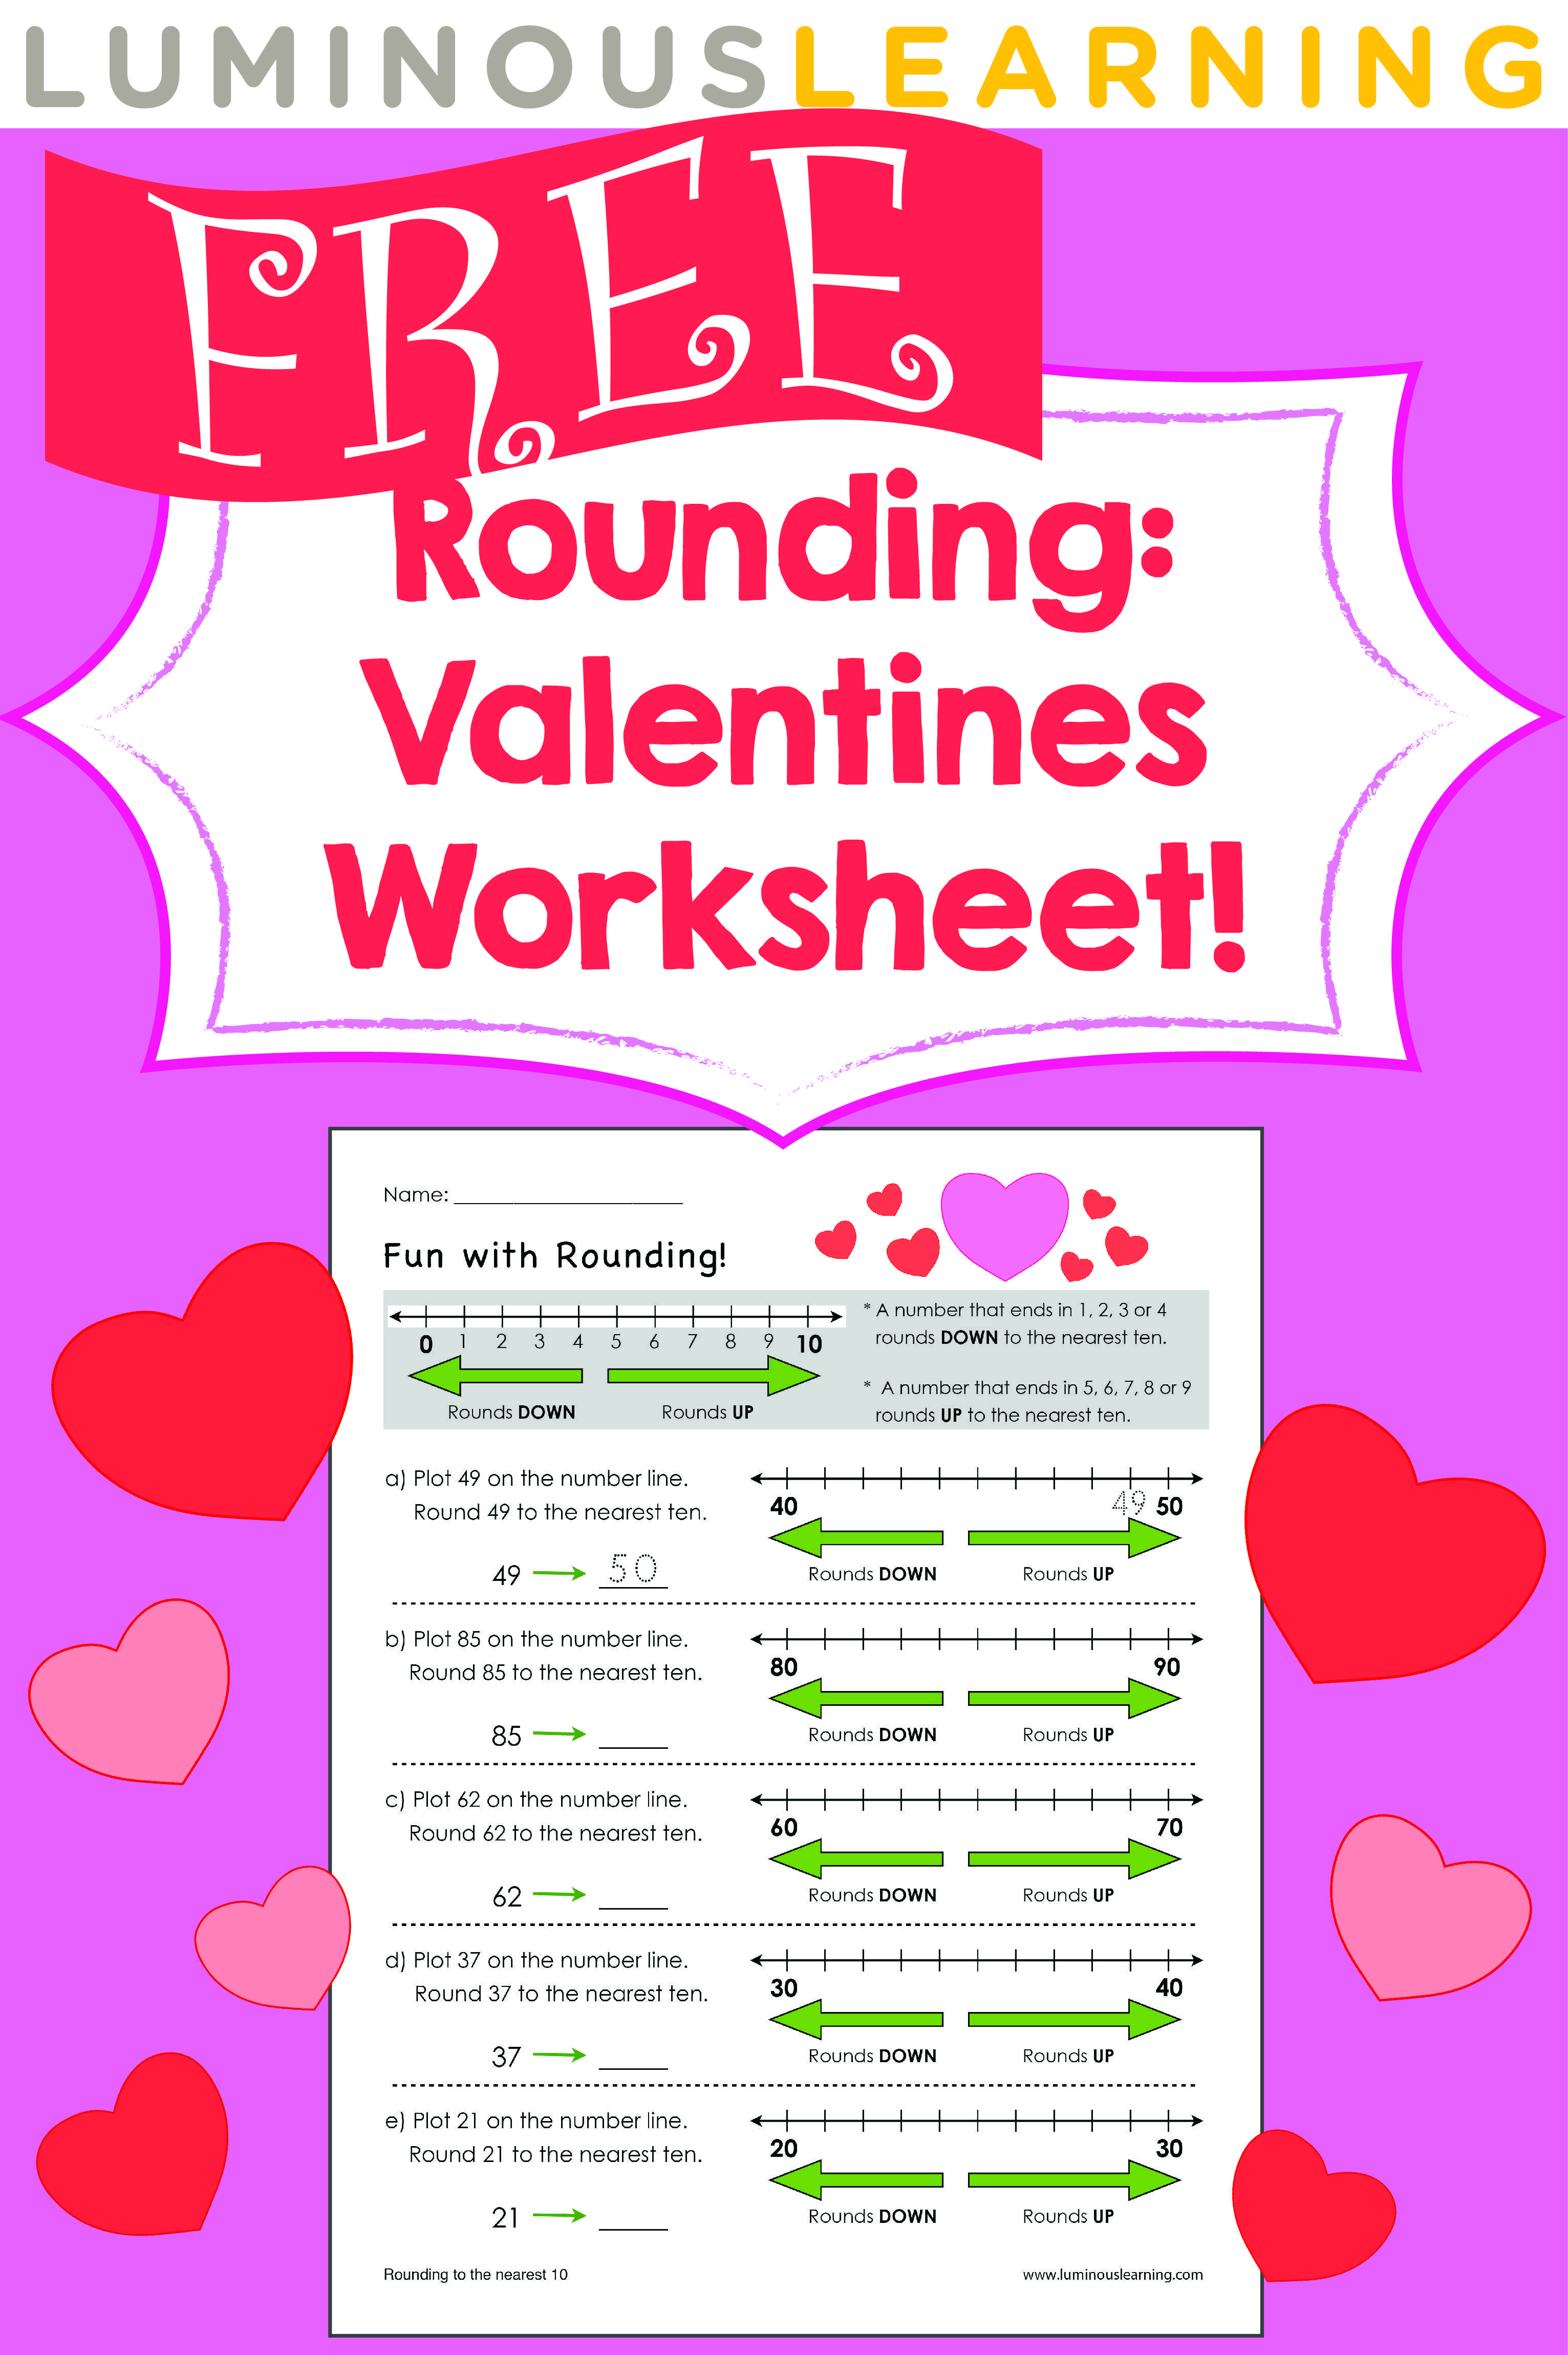 Luminous Learning Free Valentines Worksheet Rounding